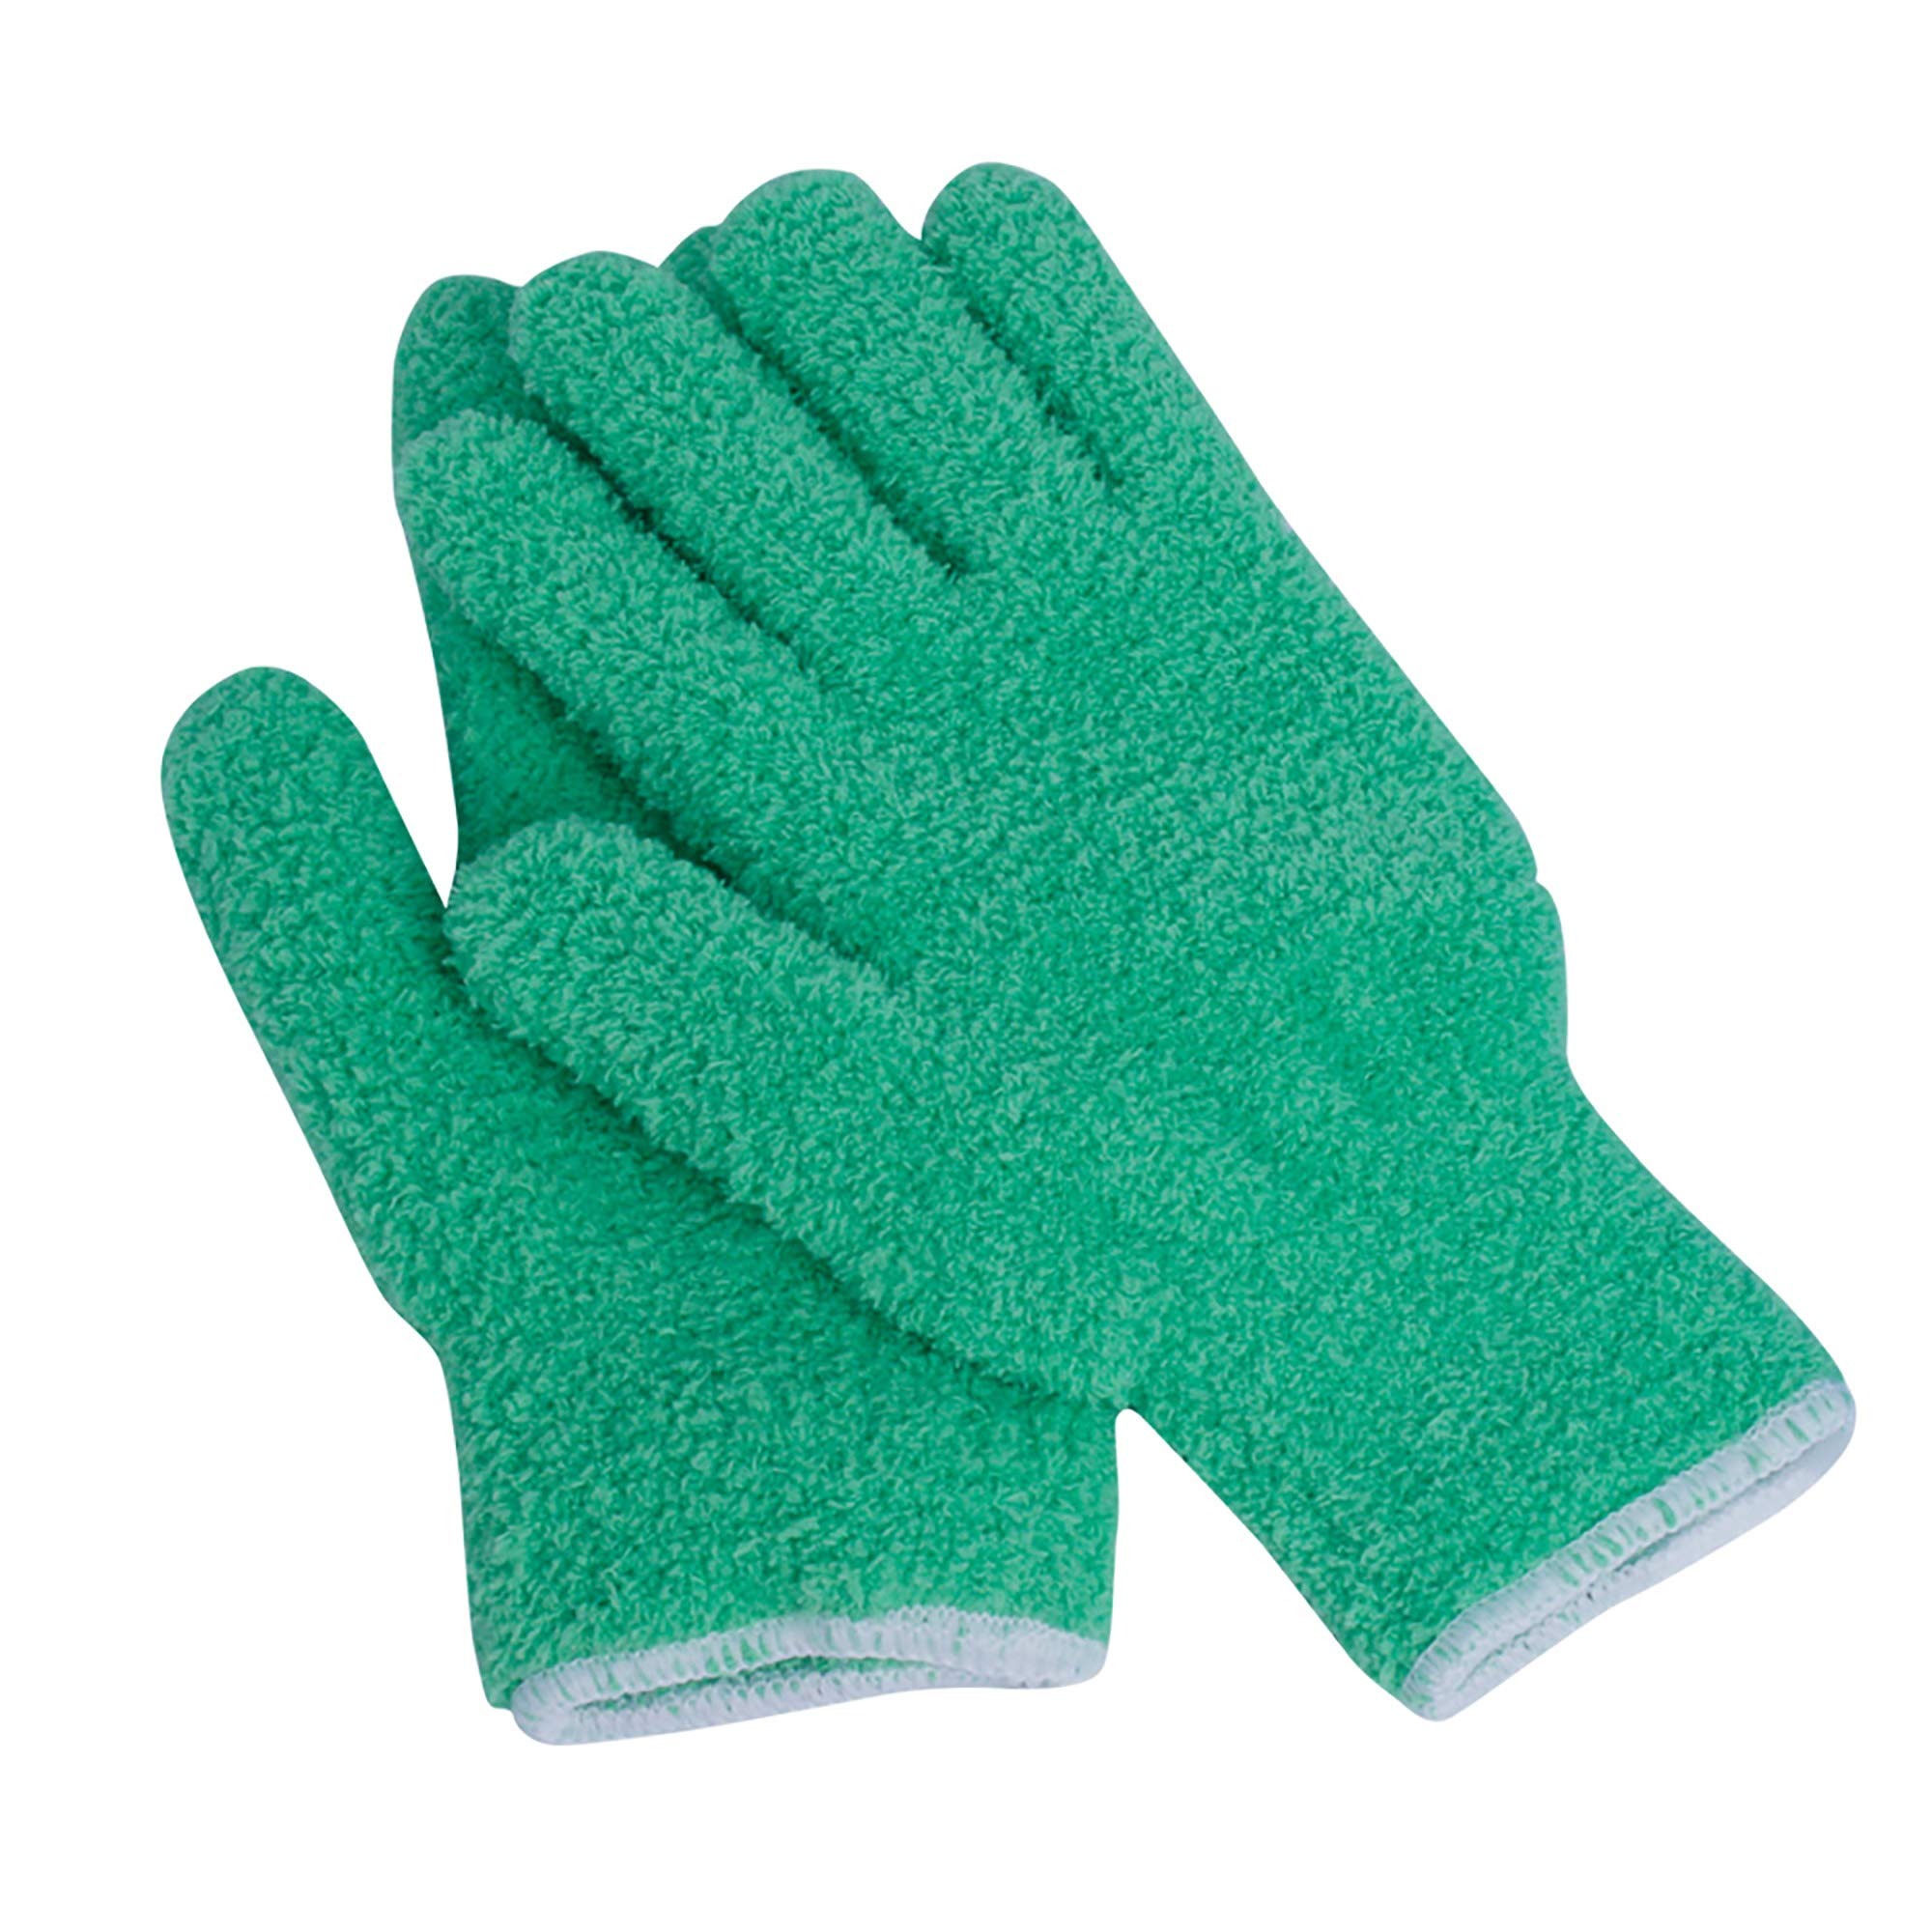 EvridWear Microfiber Auto Dusting Cleaning Gloves for Cars and Trucks, Dust Cleaning Gloves for House Industrial Chrome Parts, Perfect to Clean Mirrors, Lamps and Blinds Finger-Prints Smudges(L/XL)